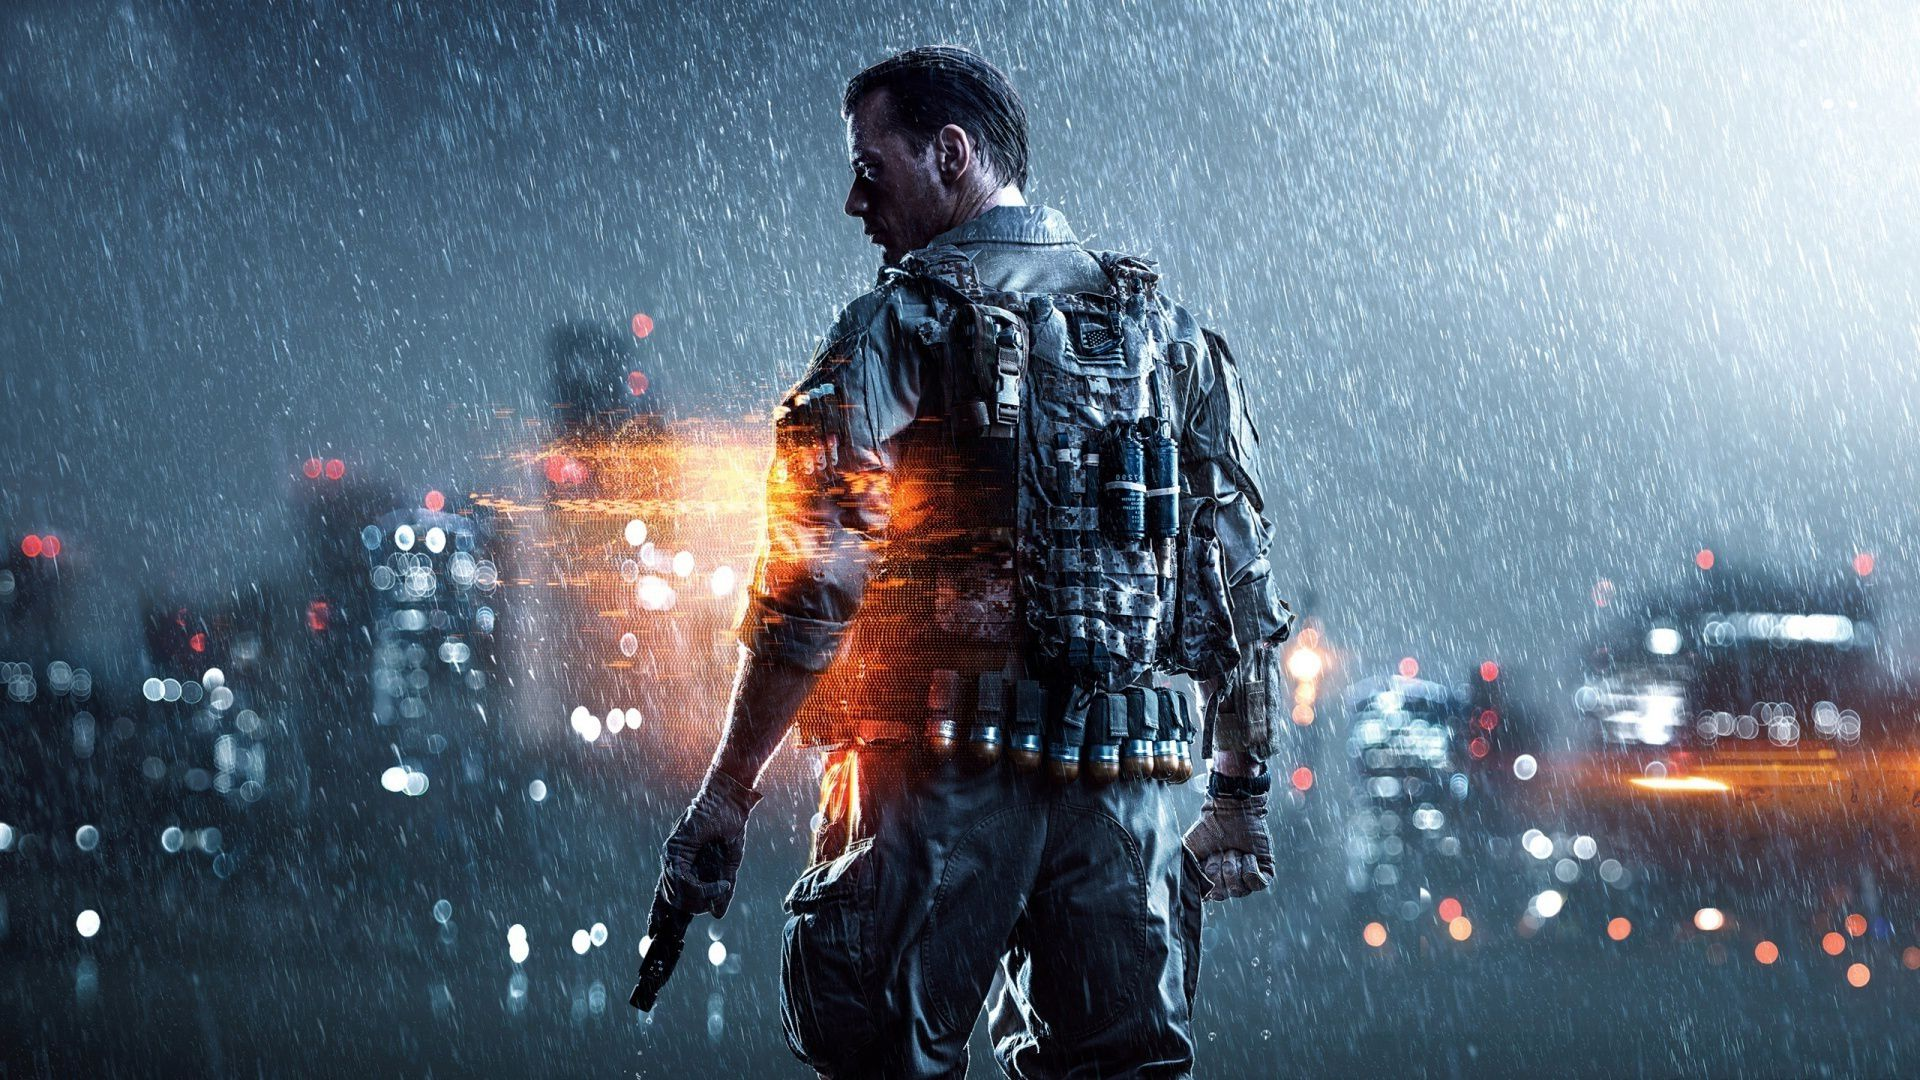 Must see Wallpaper Gaming Battlefield - abb5c9adc86132e5b8a0245eb5d78944  Collection_1910053 .jpg